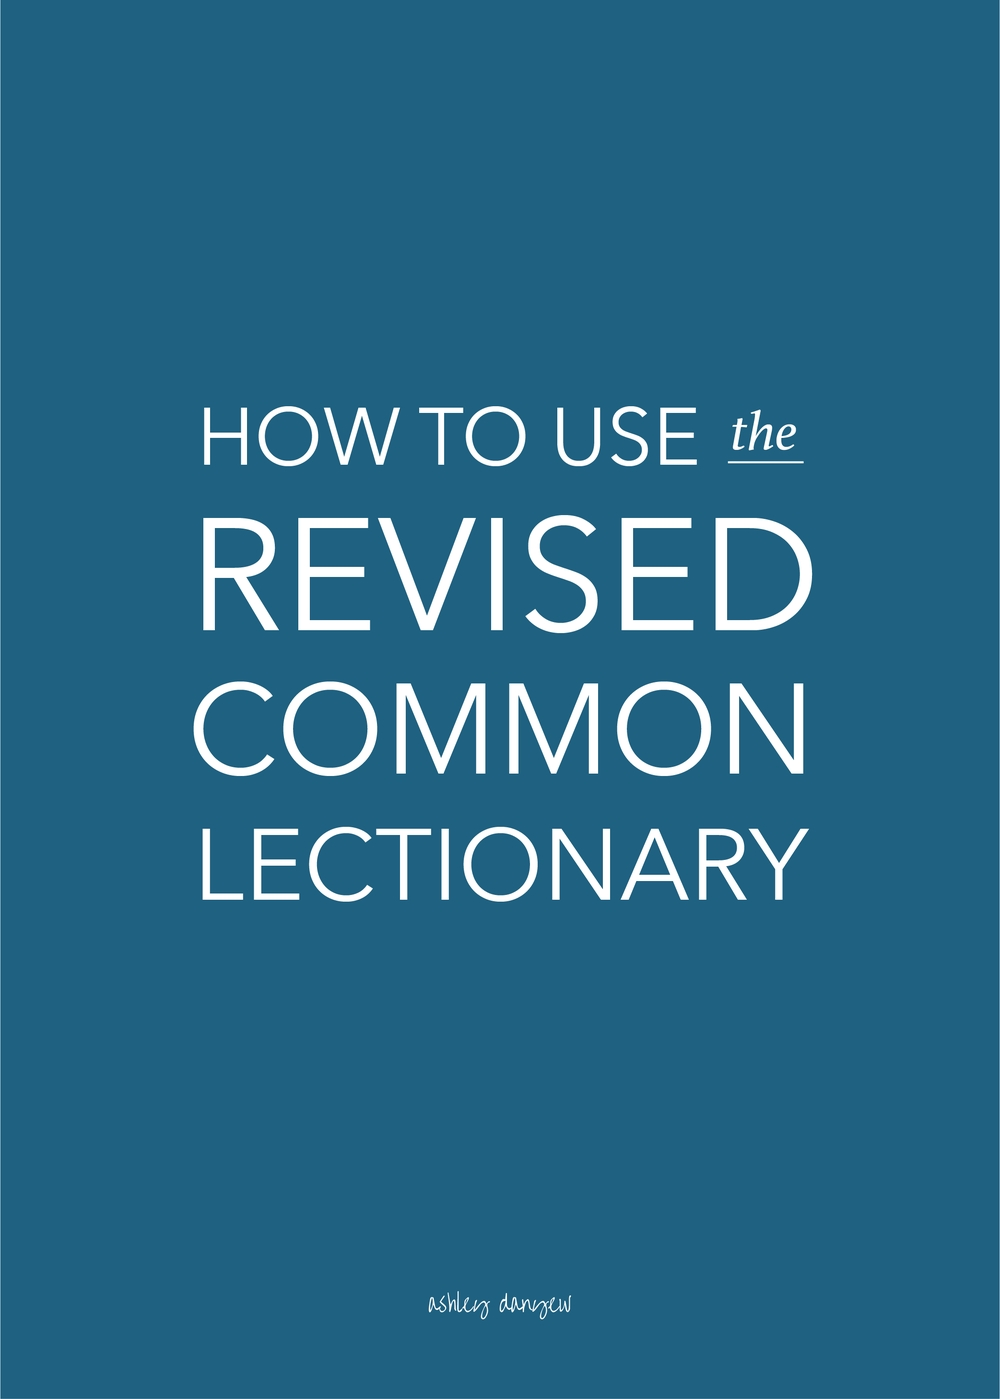 How To Use The Revised Common Lectionary | Ashley Danyew  Lectionary And Umc